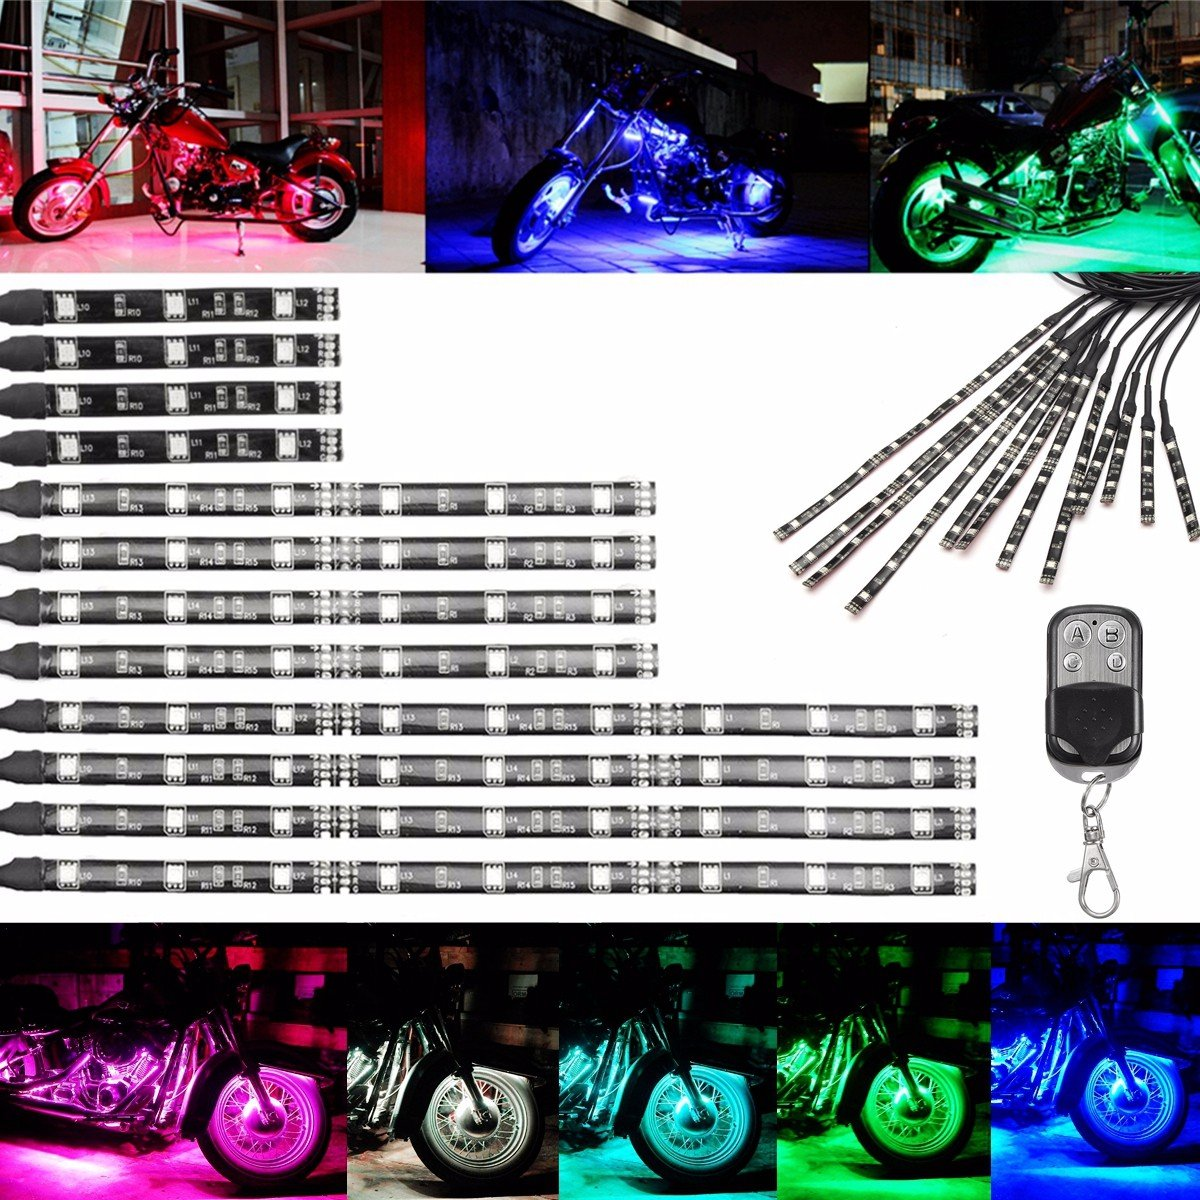 AUDEW Motorcycle Led glow light Strips with Wireless Remote Controller RGB Multi-Color Neon Glow Flashing Lights for Harley Davidson Honda Kawasaki Suzuki Ducati Polaris KTM BMW (Pack of 12) 4332994368